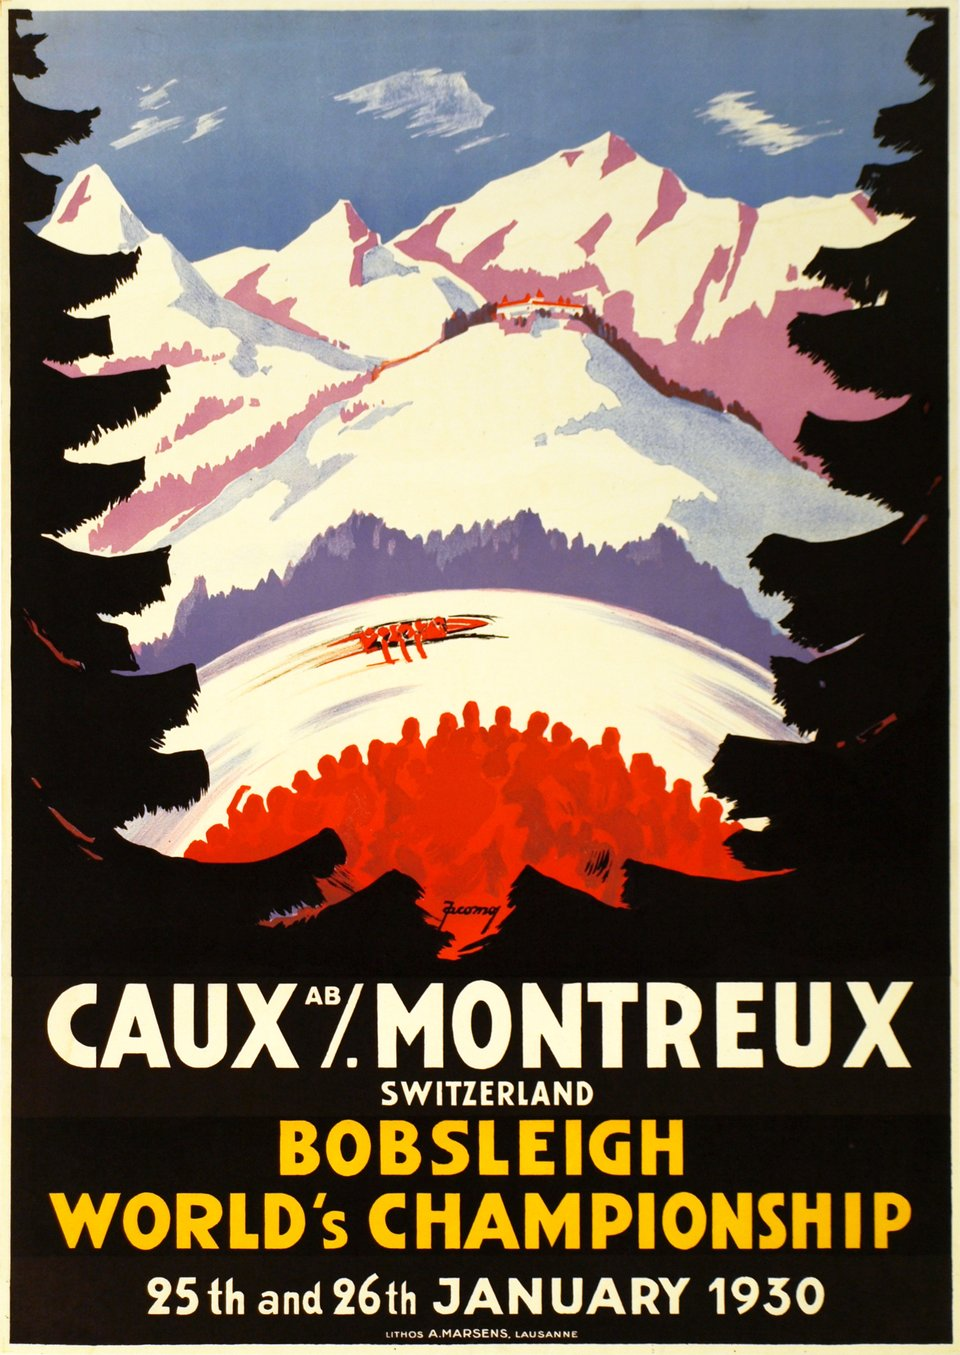 Caux / Montreux Switzerland, Bobsleigh World's Championship, 25th and 26th January 1930 – Affiche ancienne – Jacomo MULLER – 1930